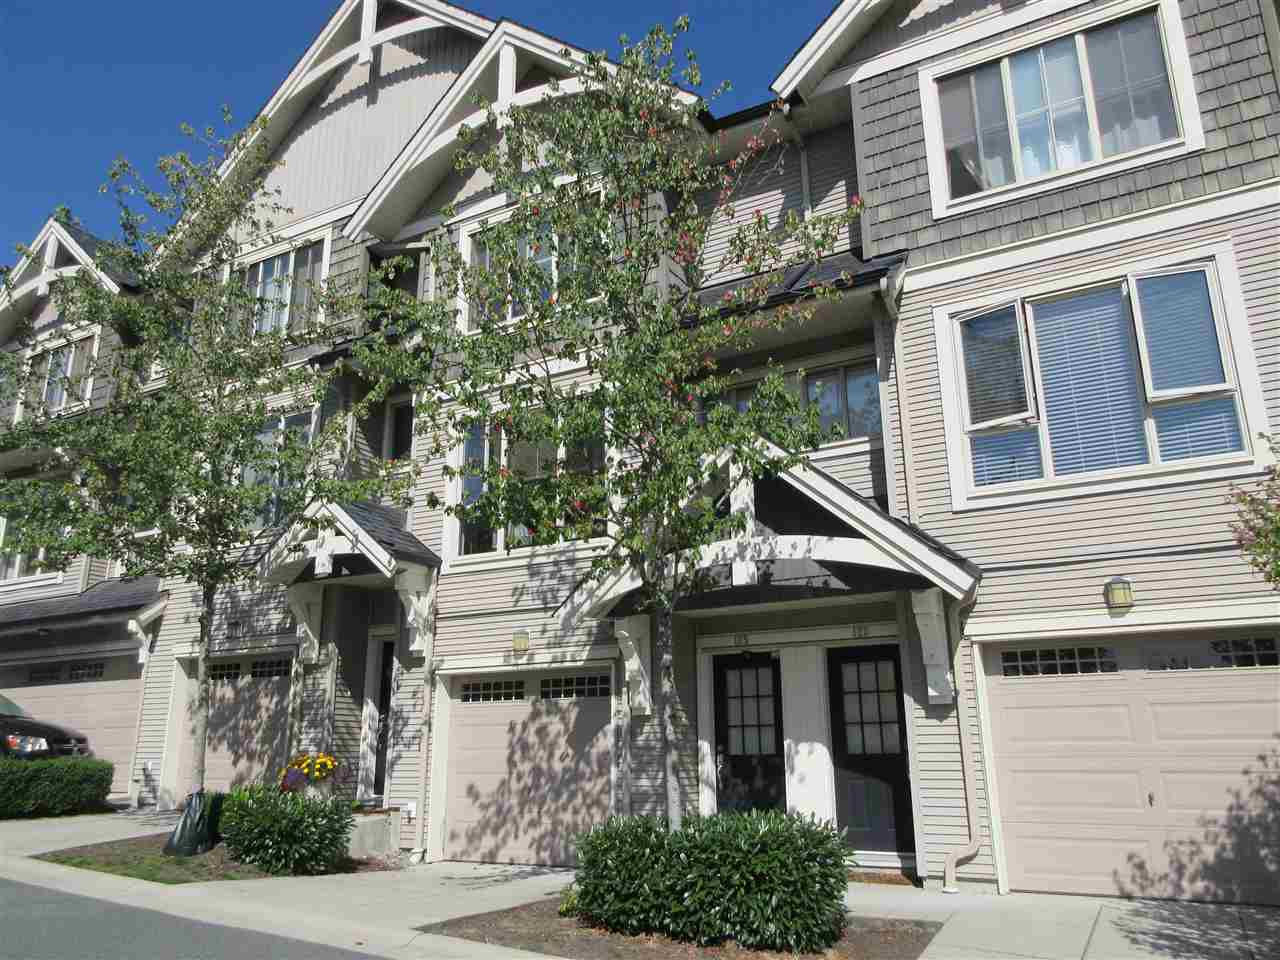 125 3105 DAYANEE SPRINGS BOULEVARD - Westwood Plateau Townhouse for sale, 3 Bedrooms (R2495824) - #1